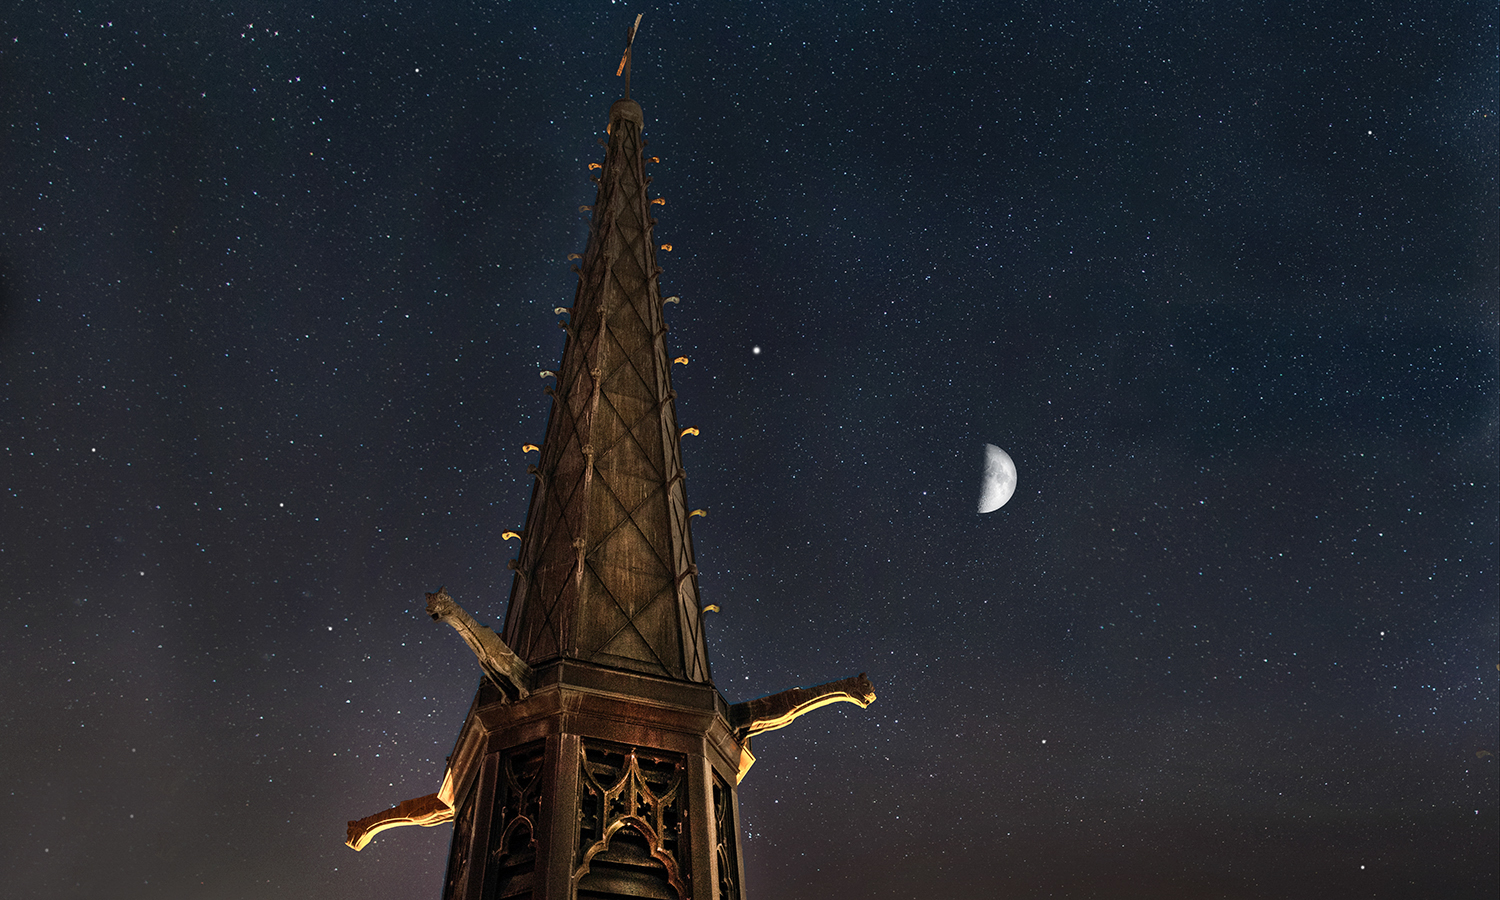 A half moon shines above St. Mark's Tower.